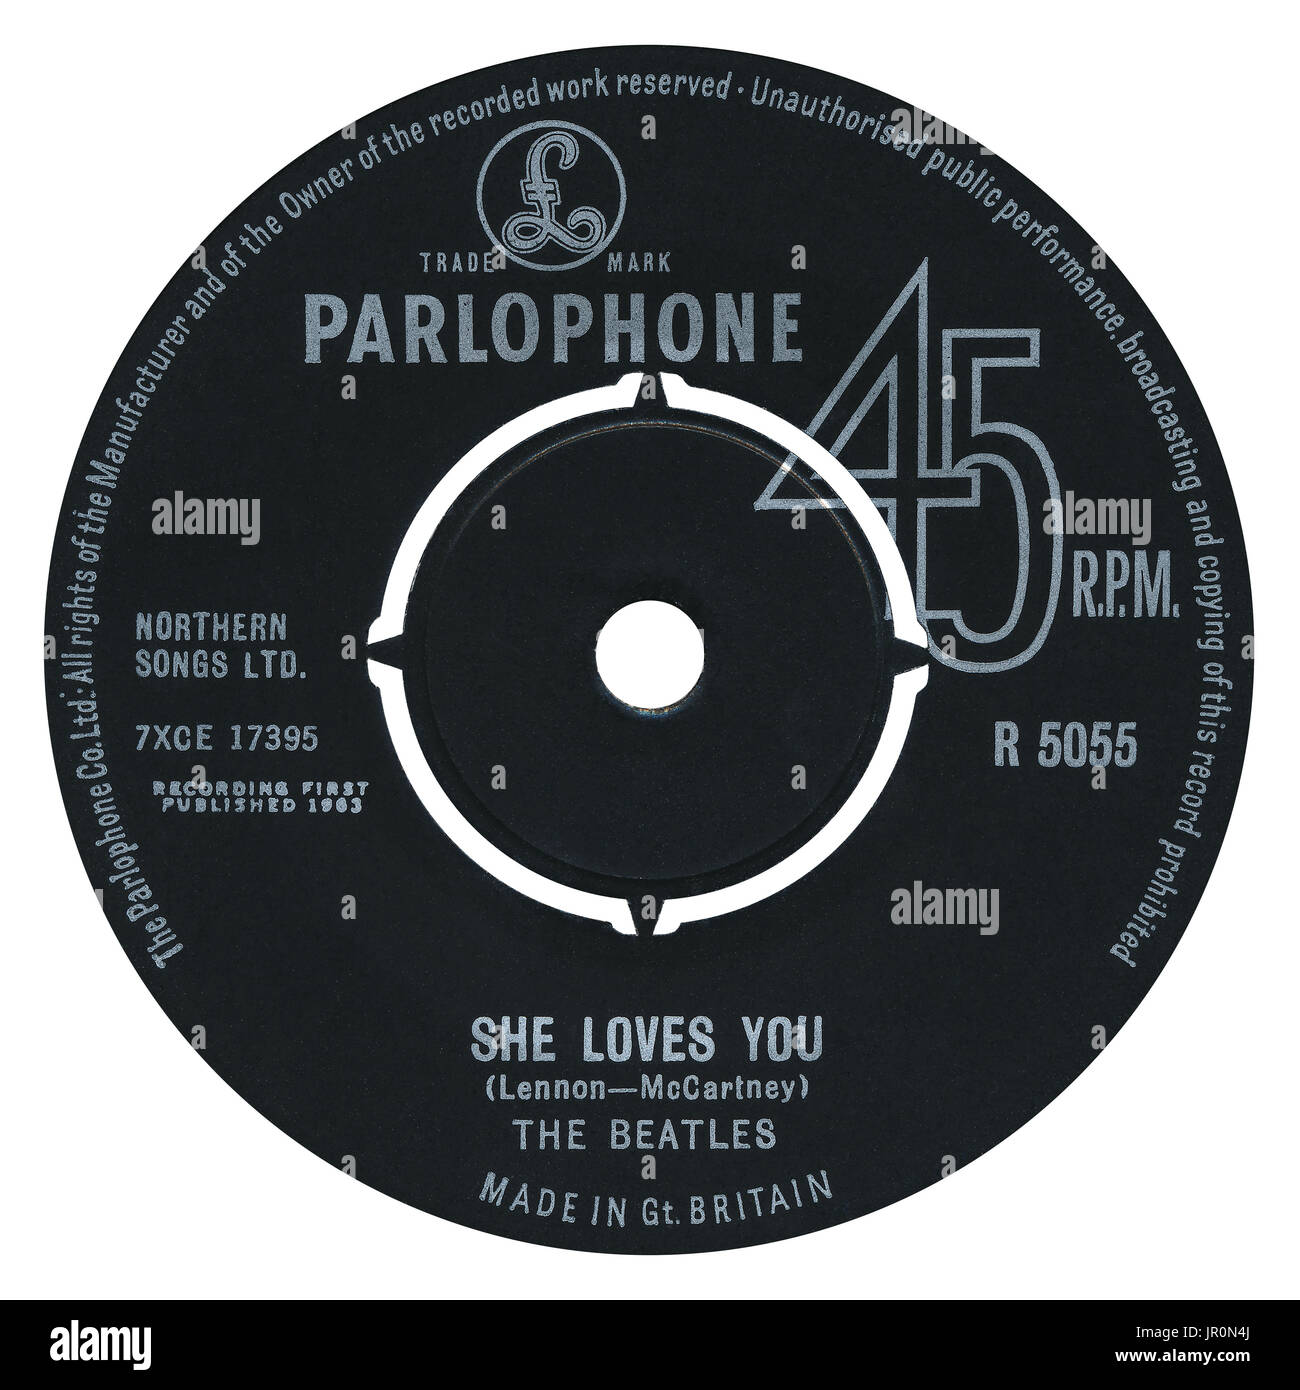 45 RPM 7' UK record label of She Loves You by The Beatles on the Parlophone label from 1963. - Stock Image